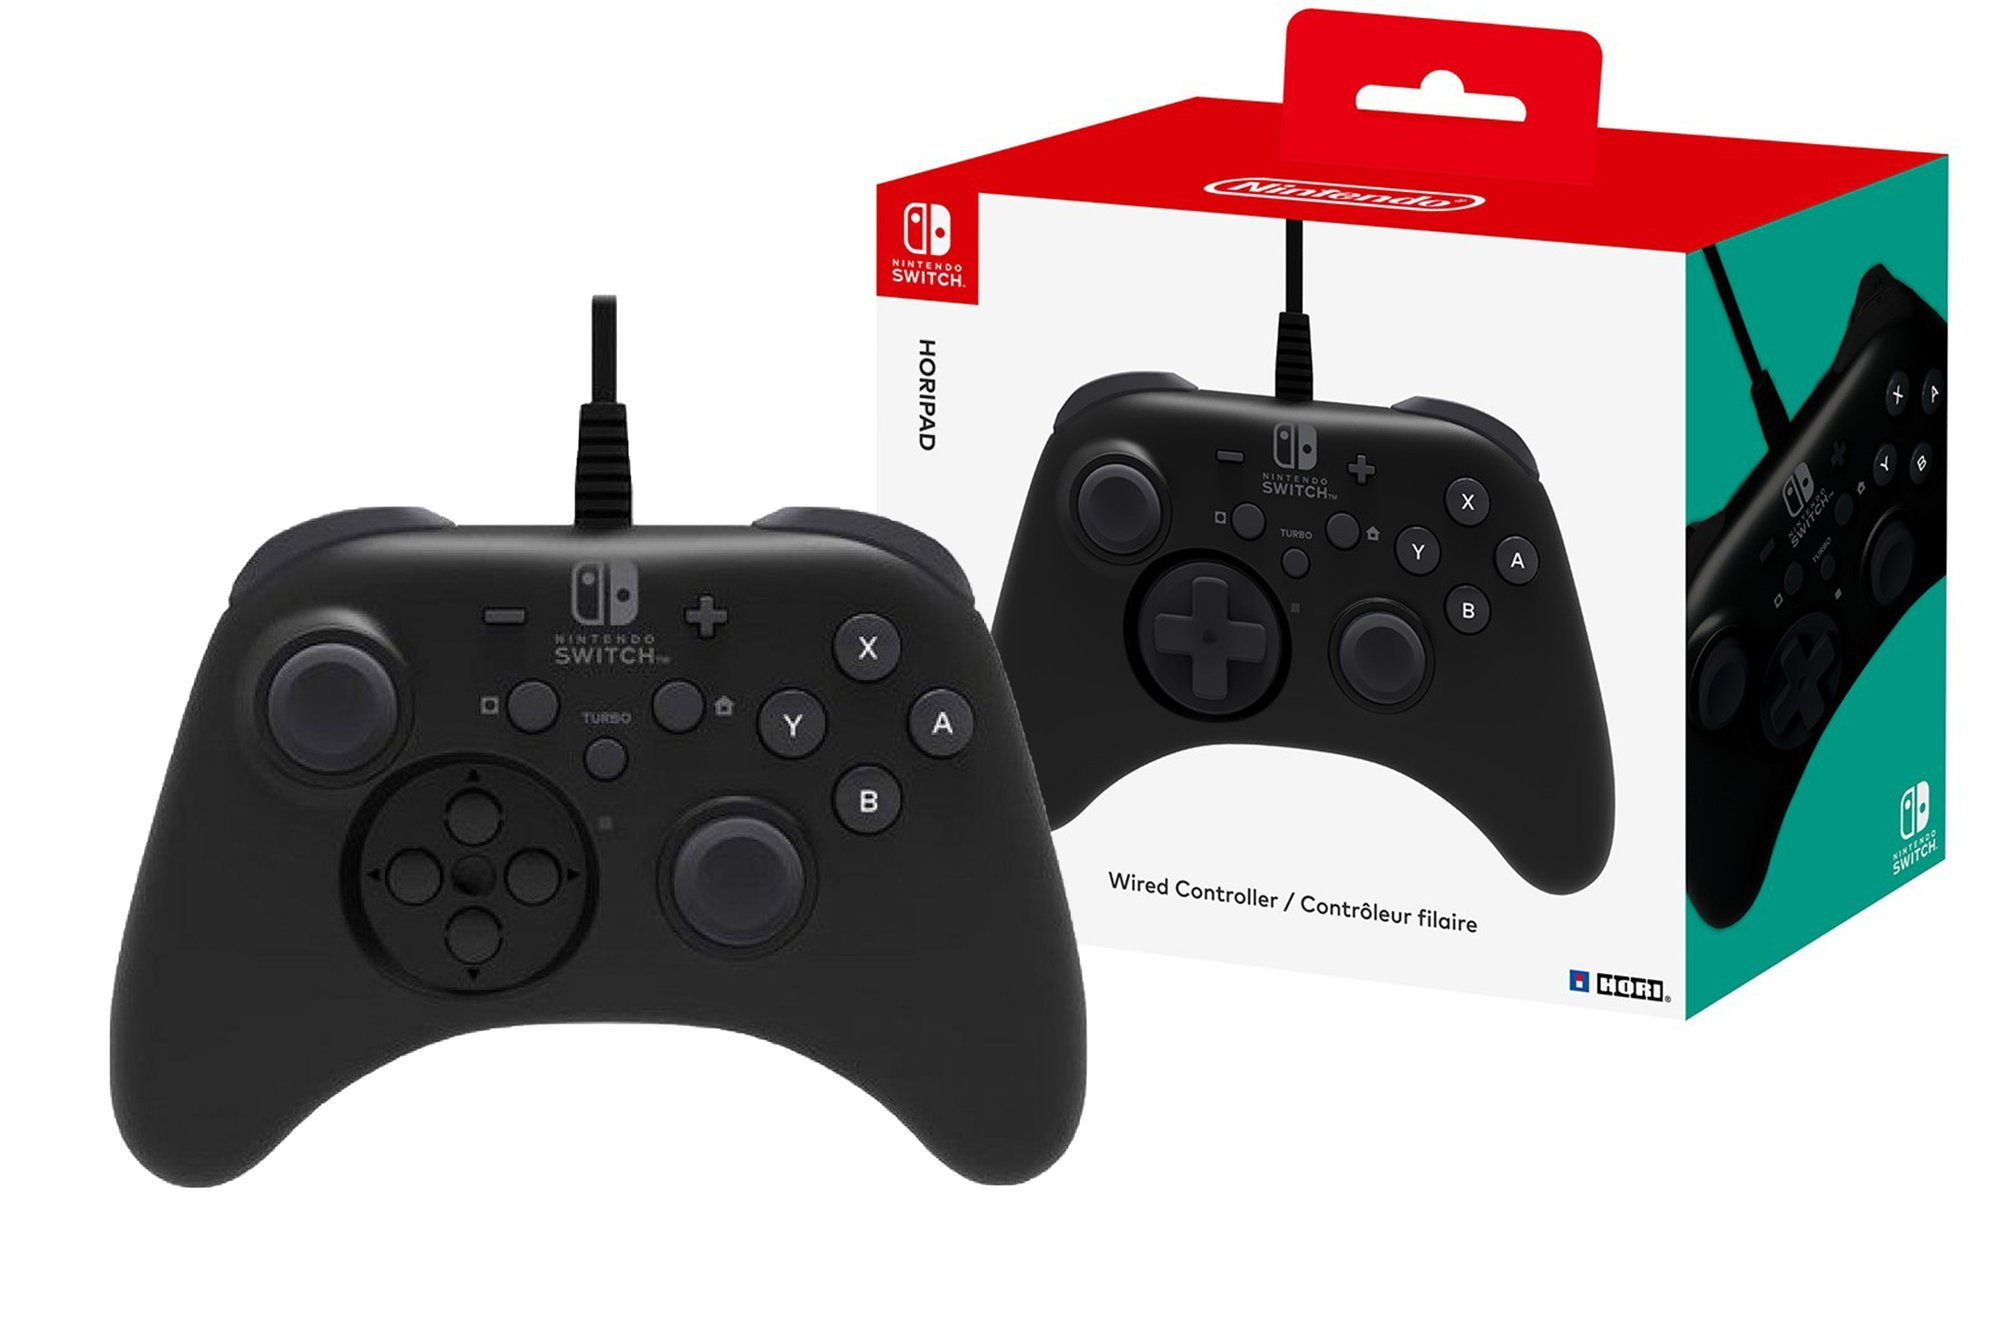 Wired Gamepad Hori Nintendo Switch Horipad NSW-001U Black